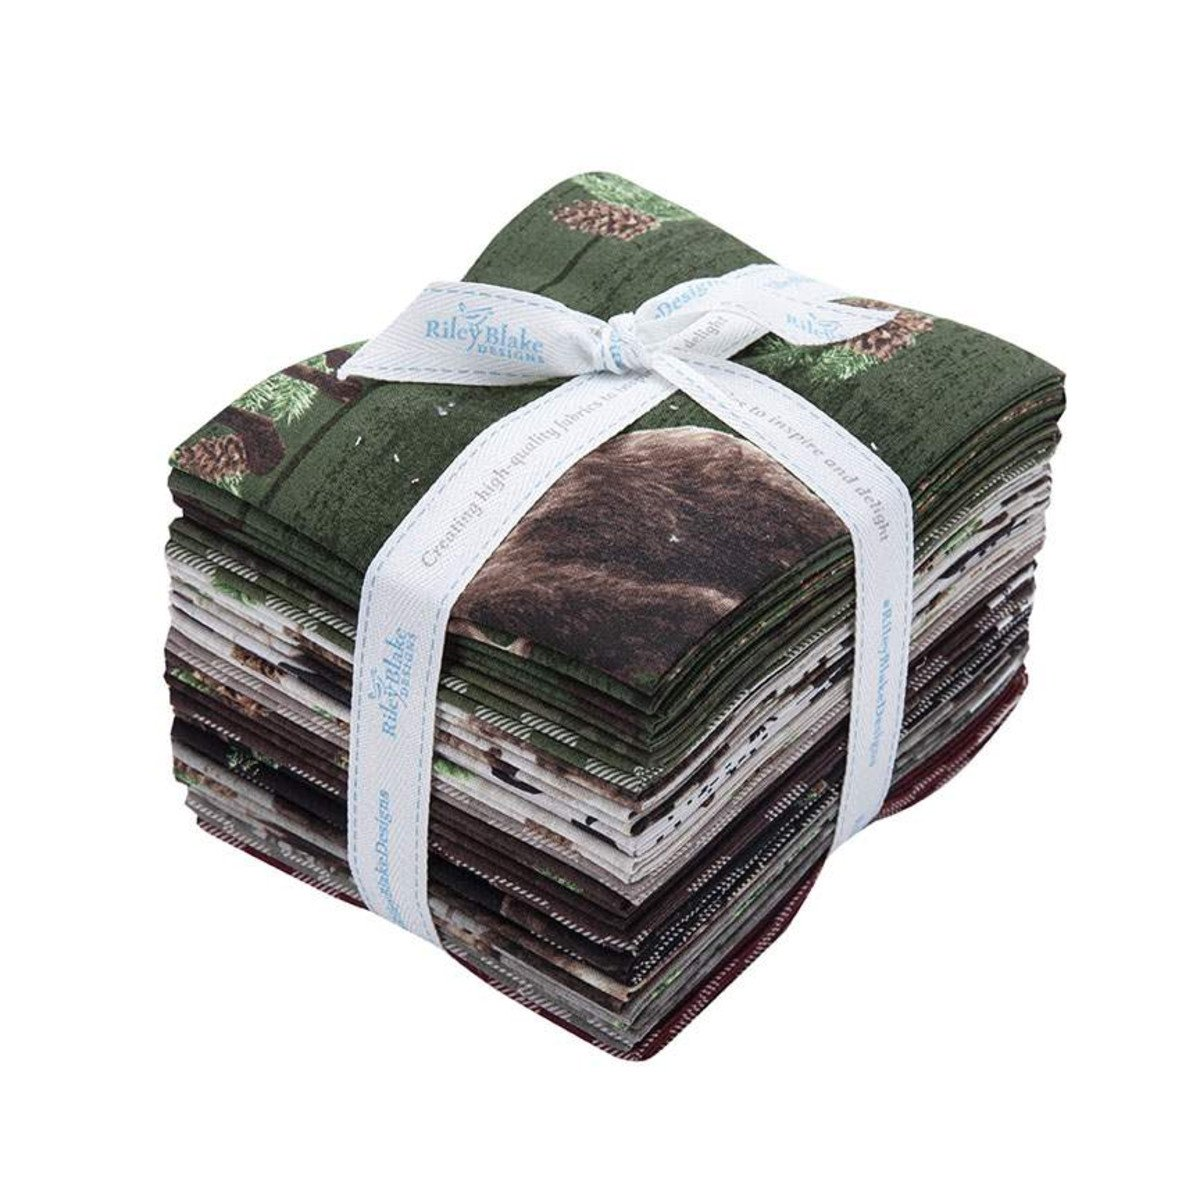 Send Me To The Woods Fat Quarter Bundle 21 pieces - by Riley Blake FQ-9270-21